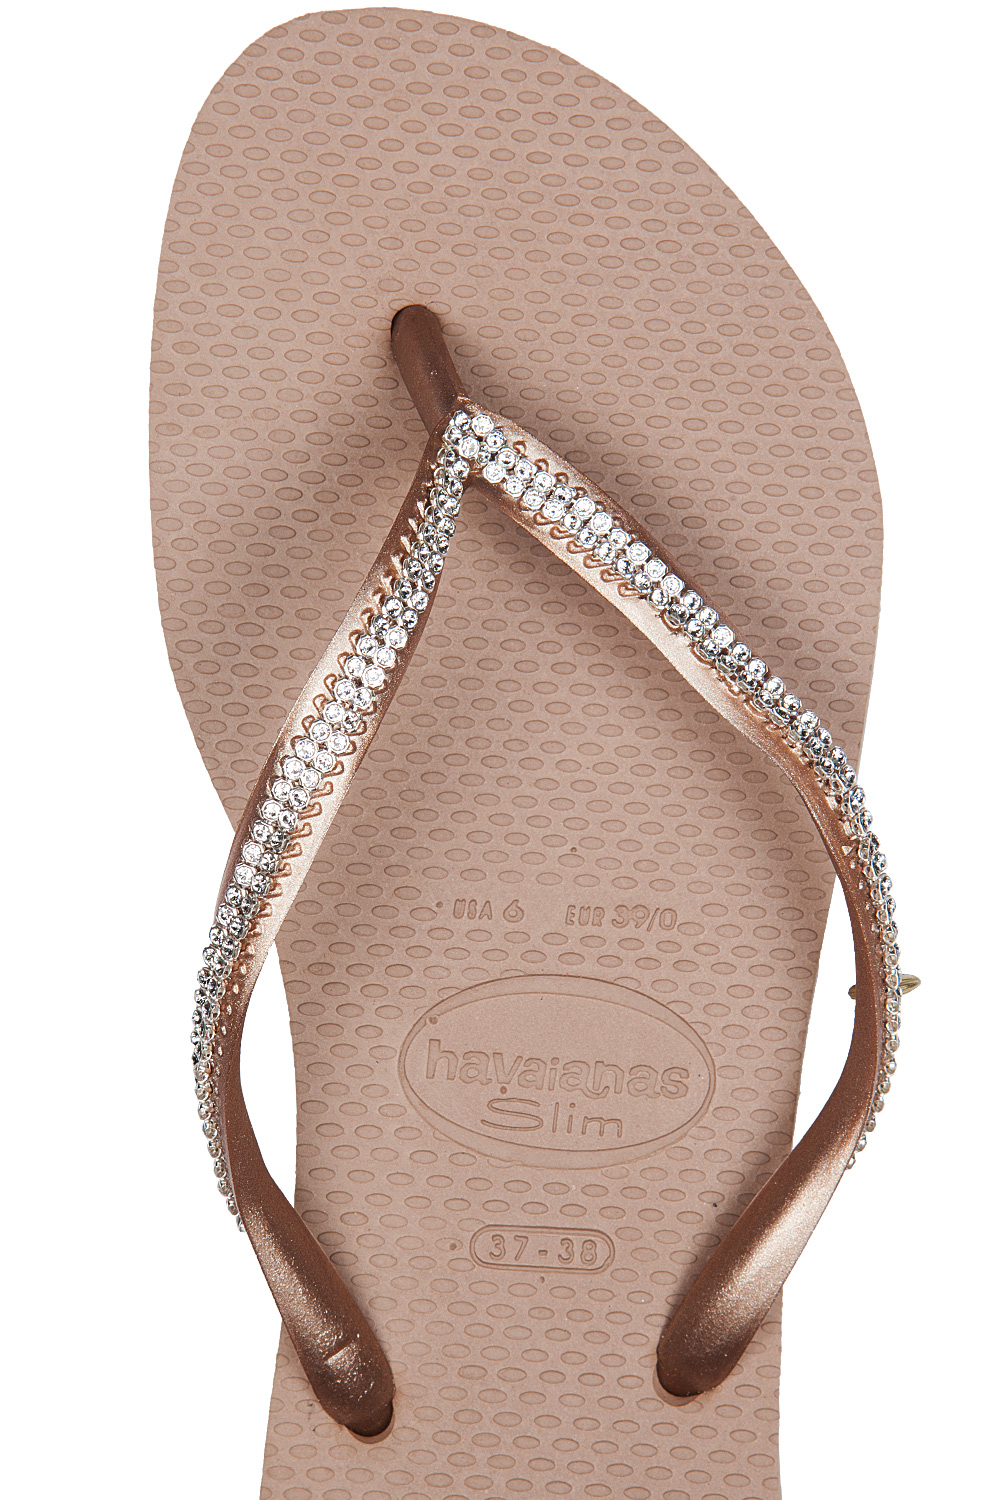 3b6cd4c39 ... havaianas-slim-crystal-mesh-flip-flops-rose-gold